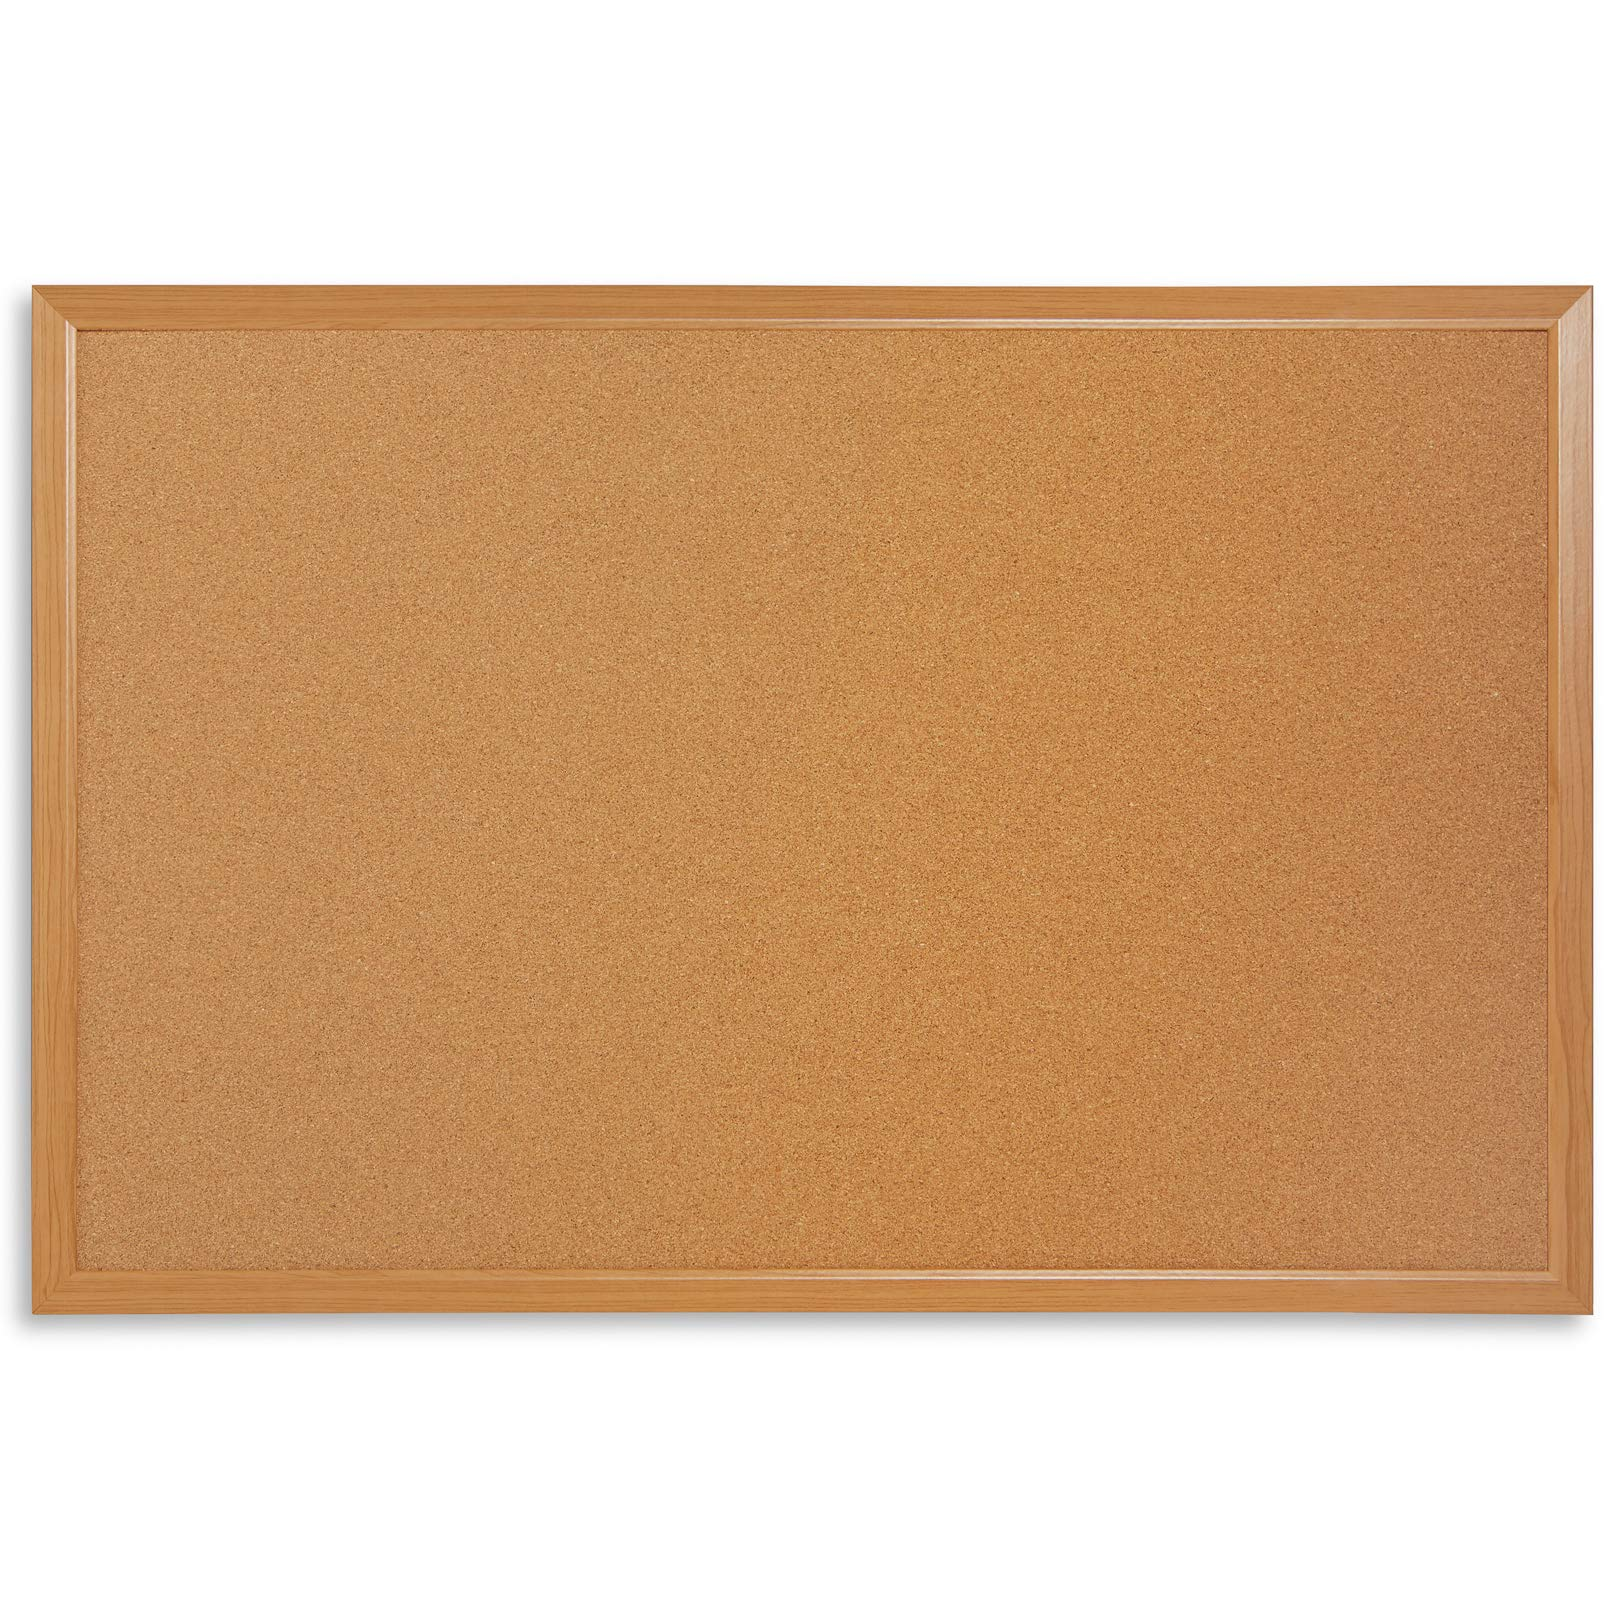 """Blue Summit Supplies 24"""" x 36"""" Corkboard with Natural Wood Frame, Bulletin Board with Included Push Pins for Office, Classroom, or Home, Mounting Hardware Included"""